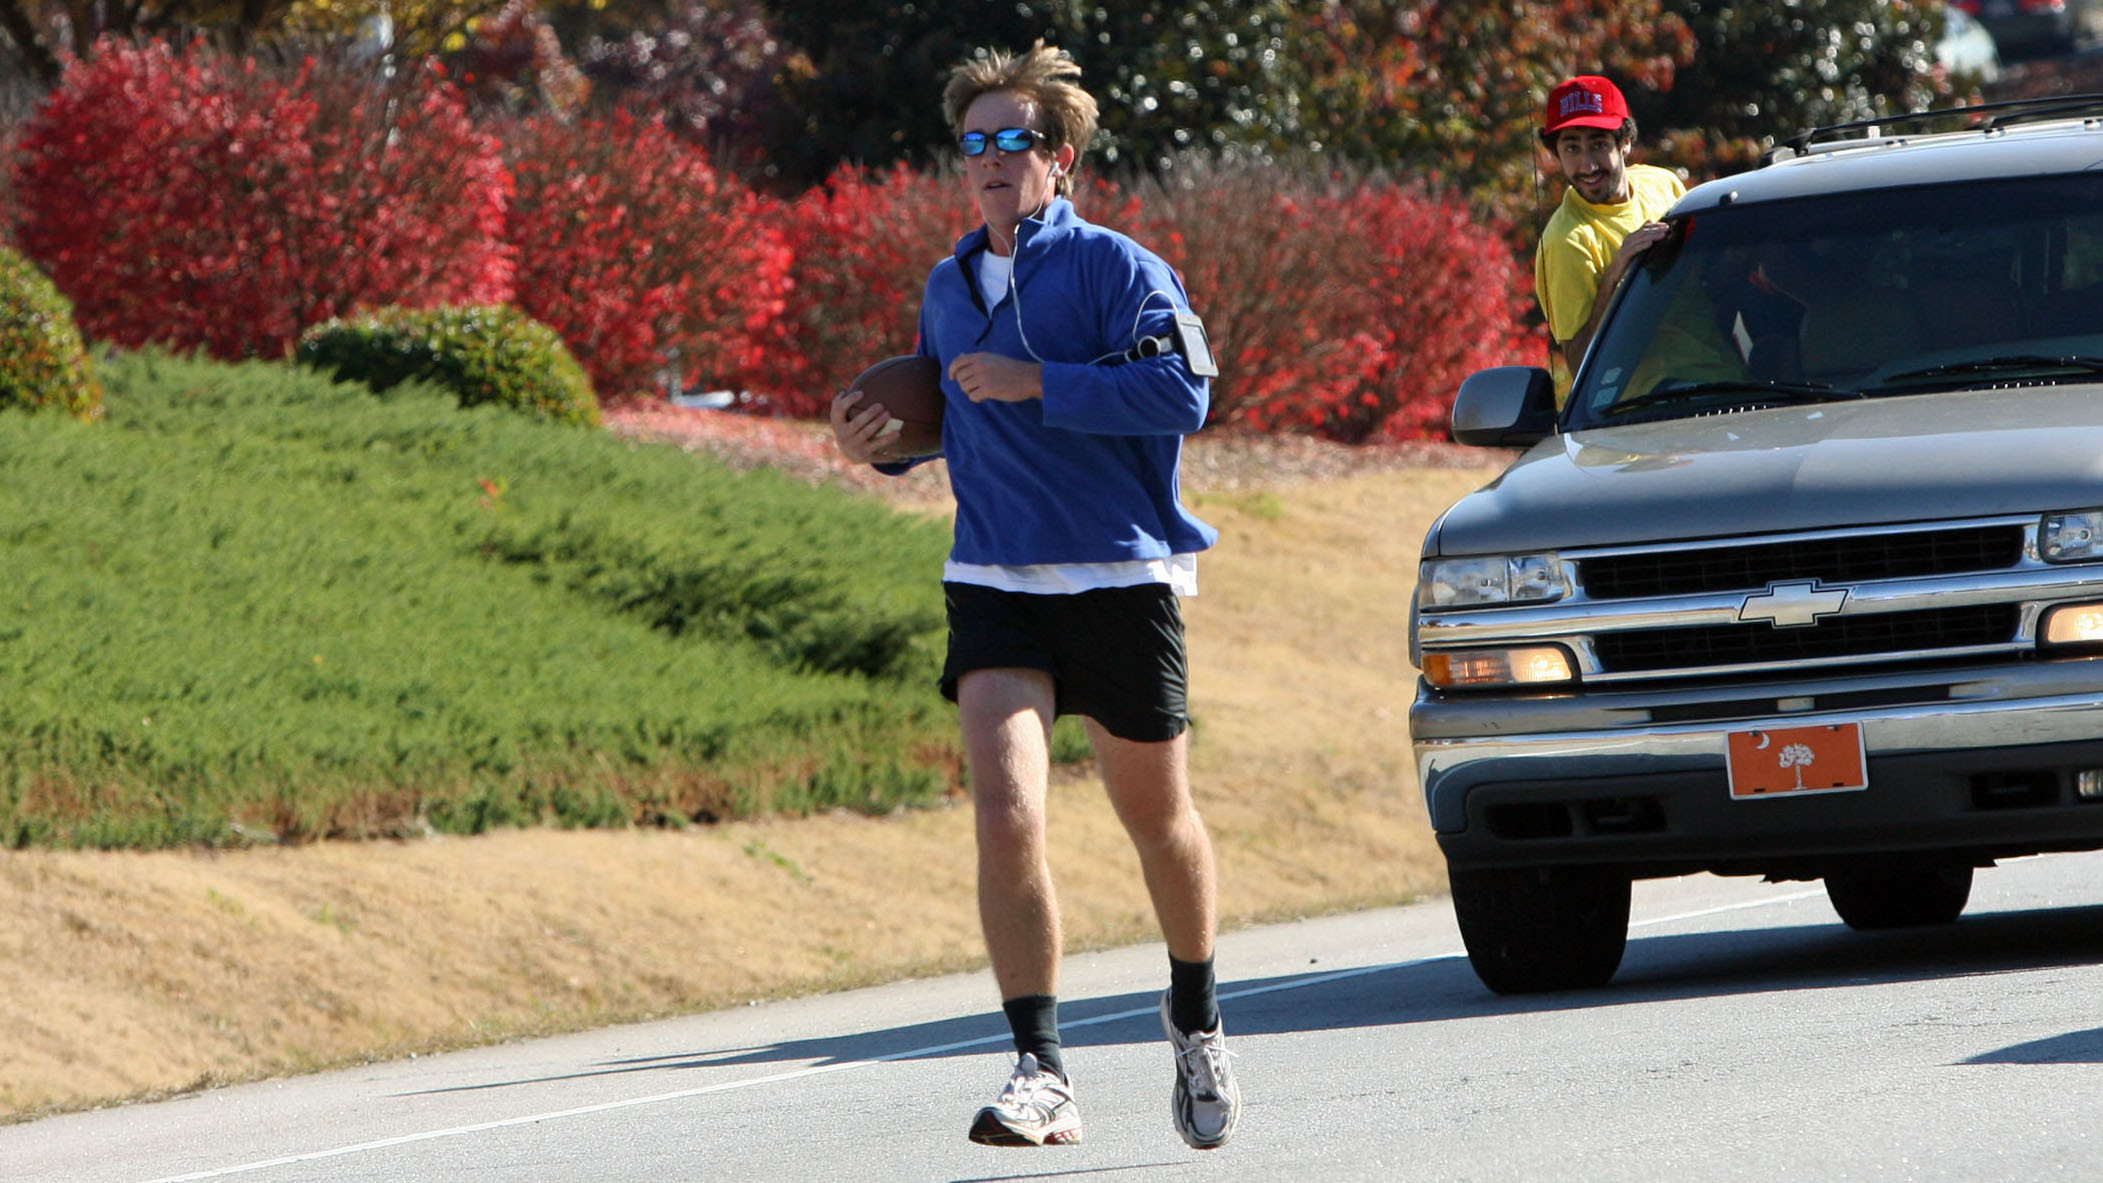 Annual Clemson-South Carolina Game Ball Run to be Held Nov. 21-22